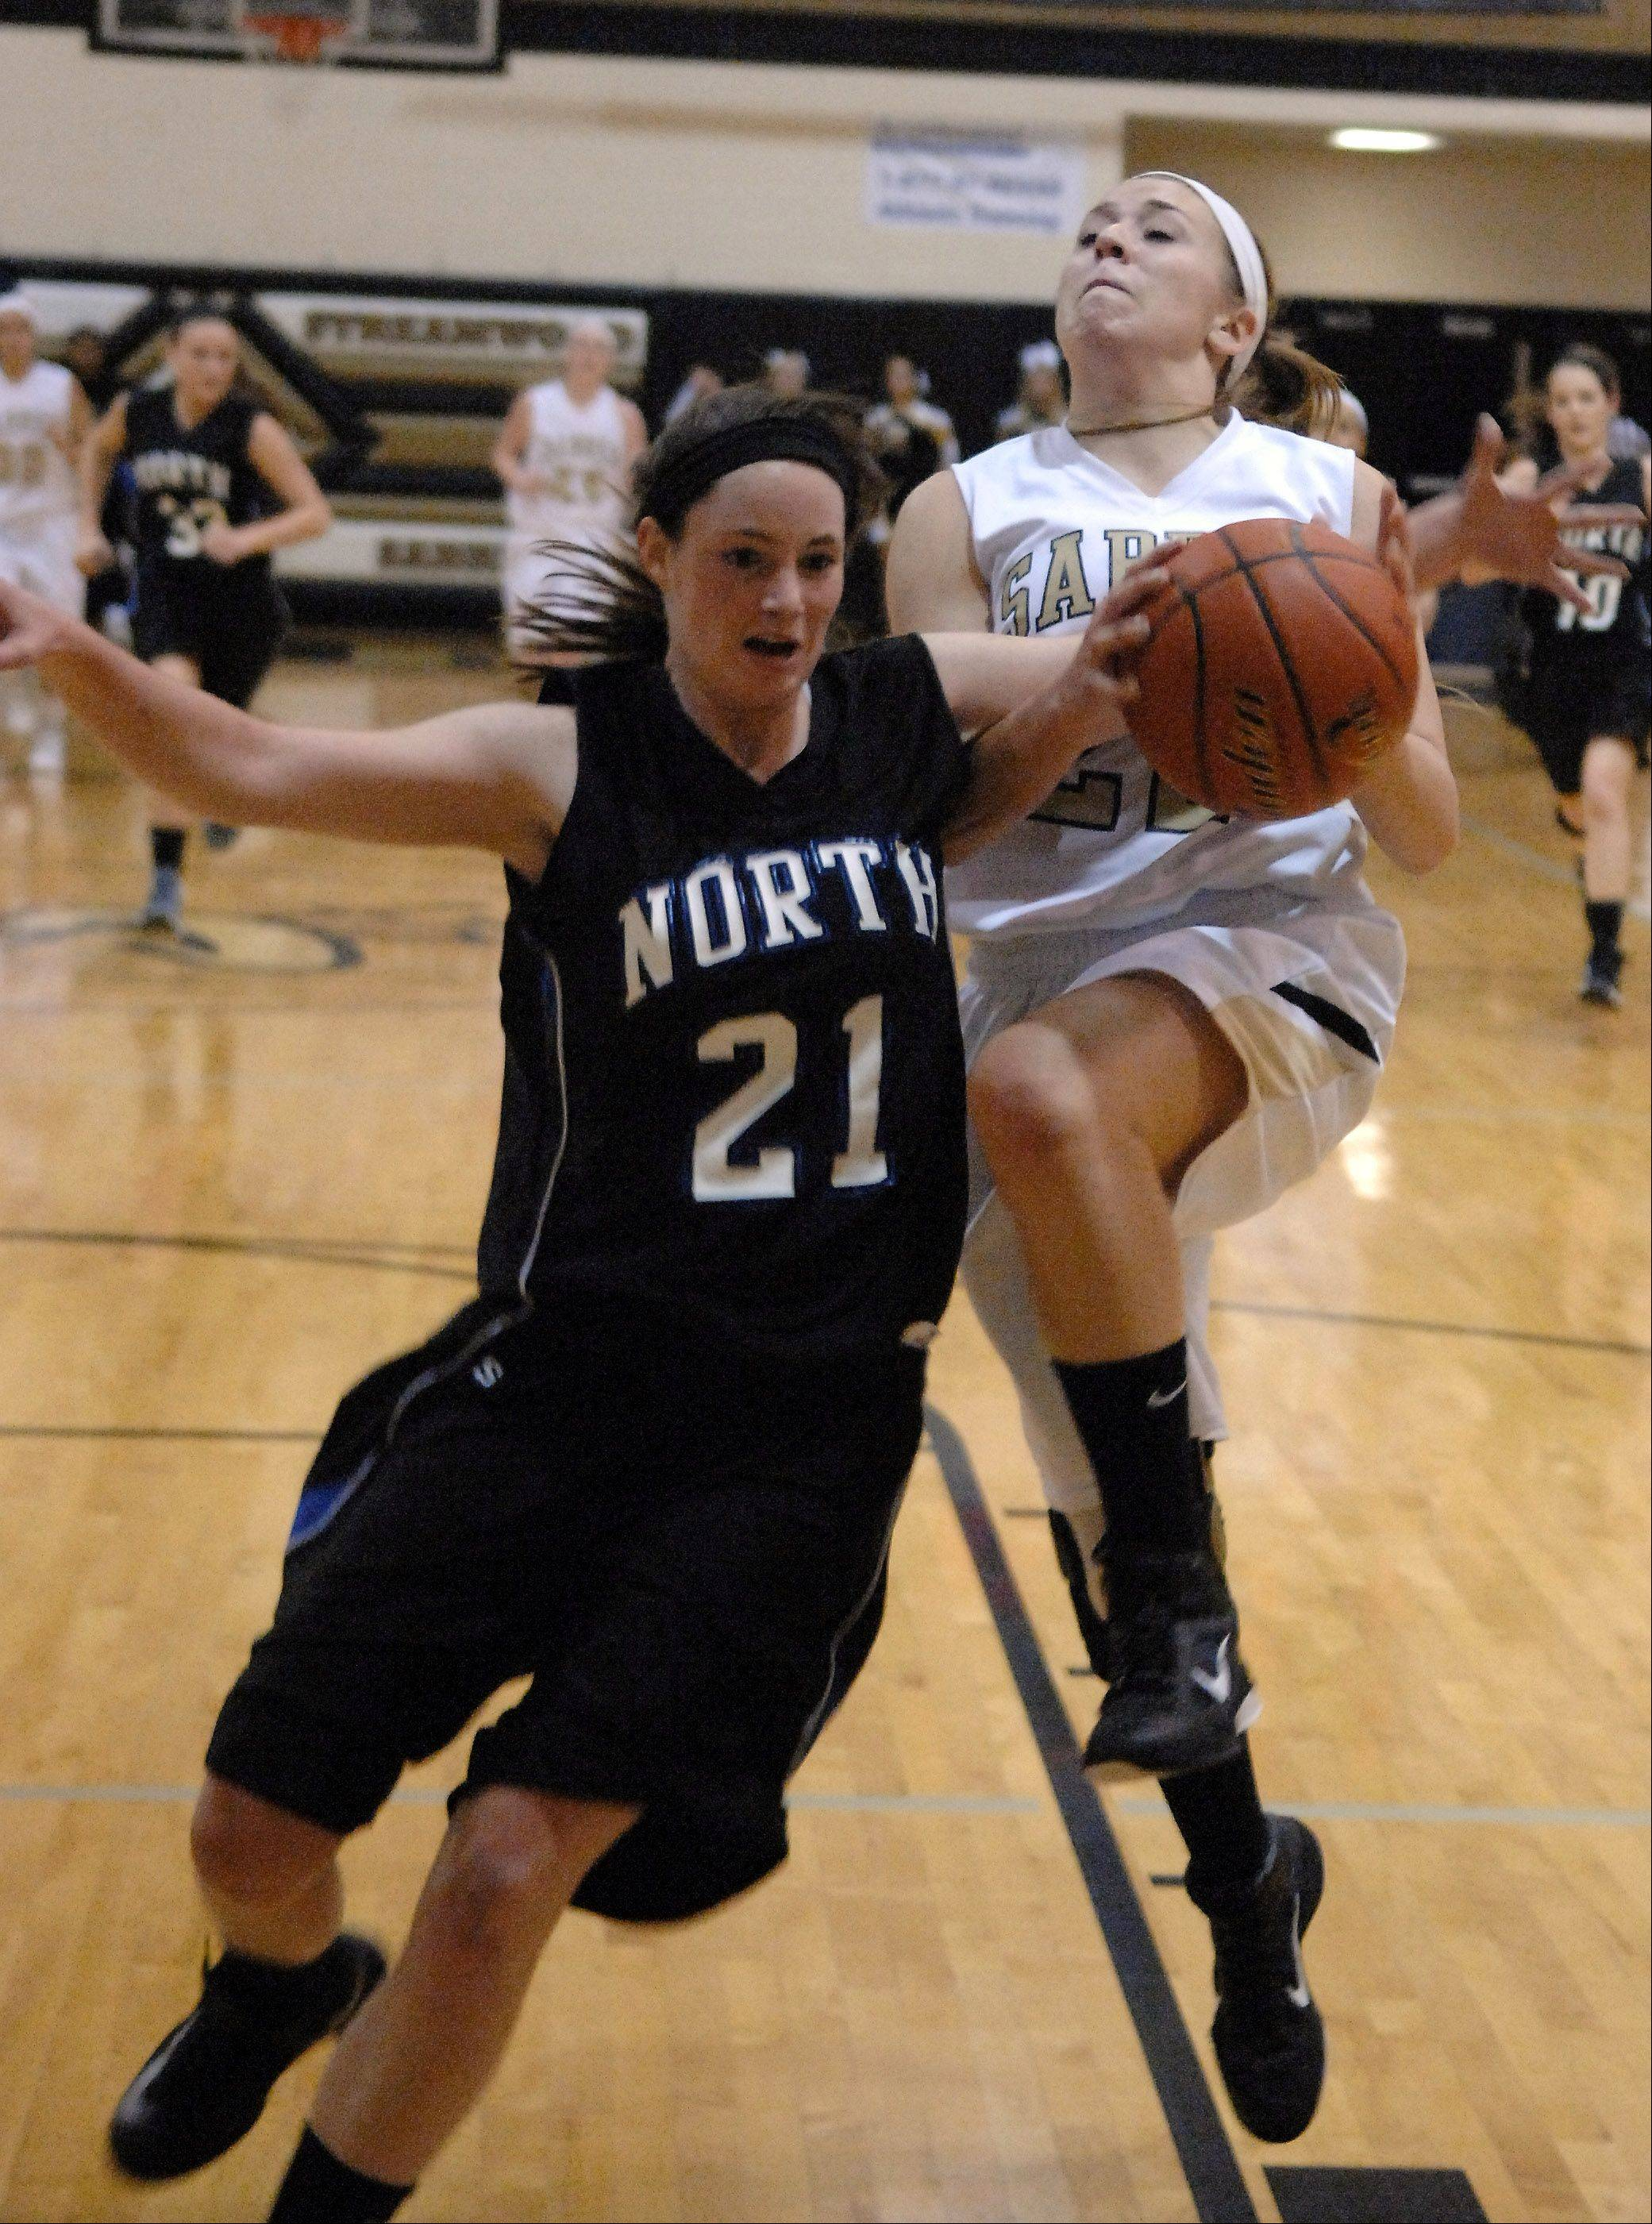 Streamwood's Holly Foret gets fouled by St. Charles North's Alex Silverman while driving to the basket during Friday's game at Streamwood.